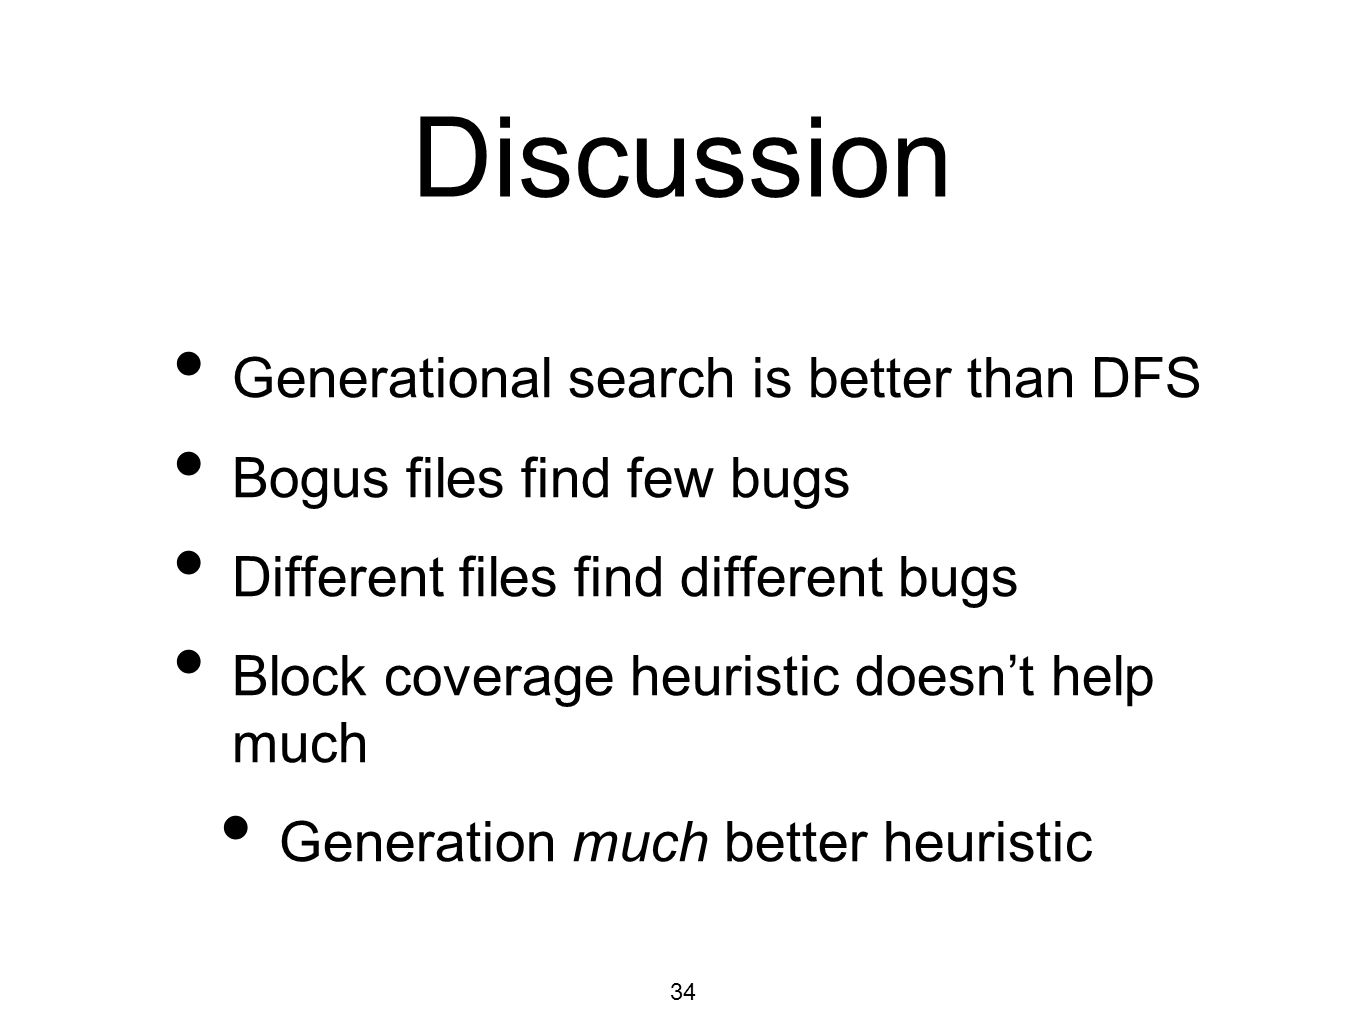 34 Discussion Generational search is better than DFS Bogus files find few bugs Different files find different bugs Block coverage heuristic doesn't help much Generation much better heuristic